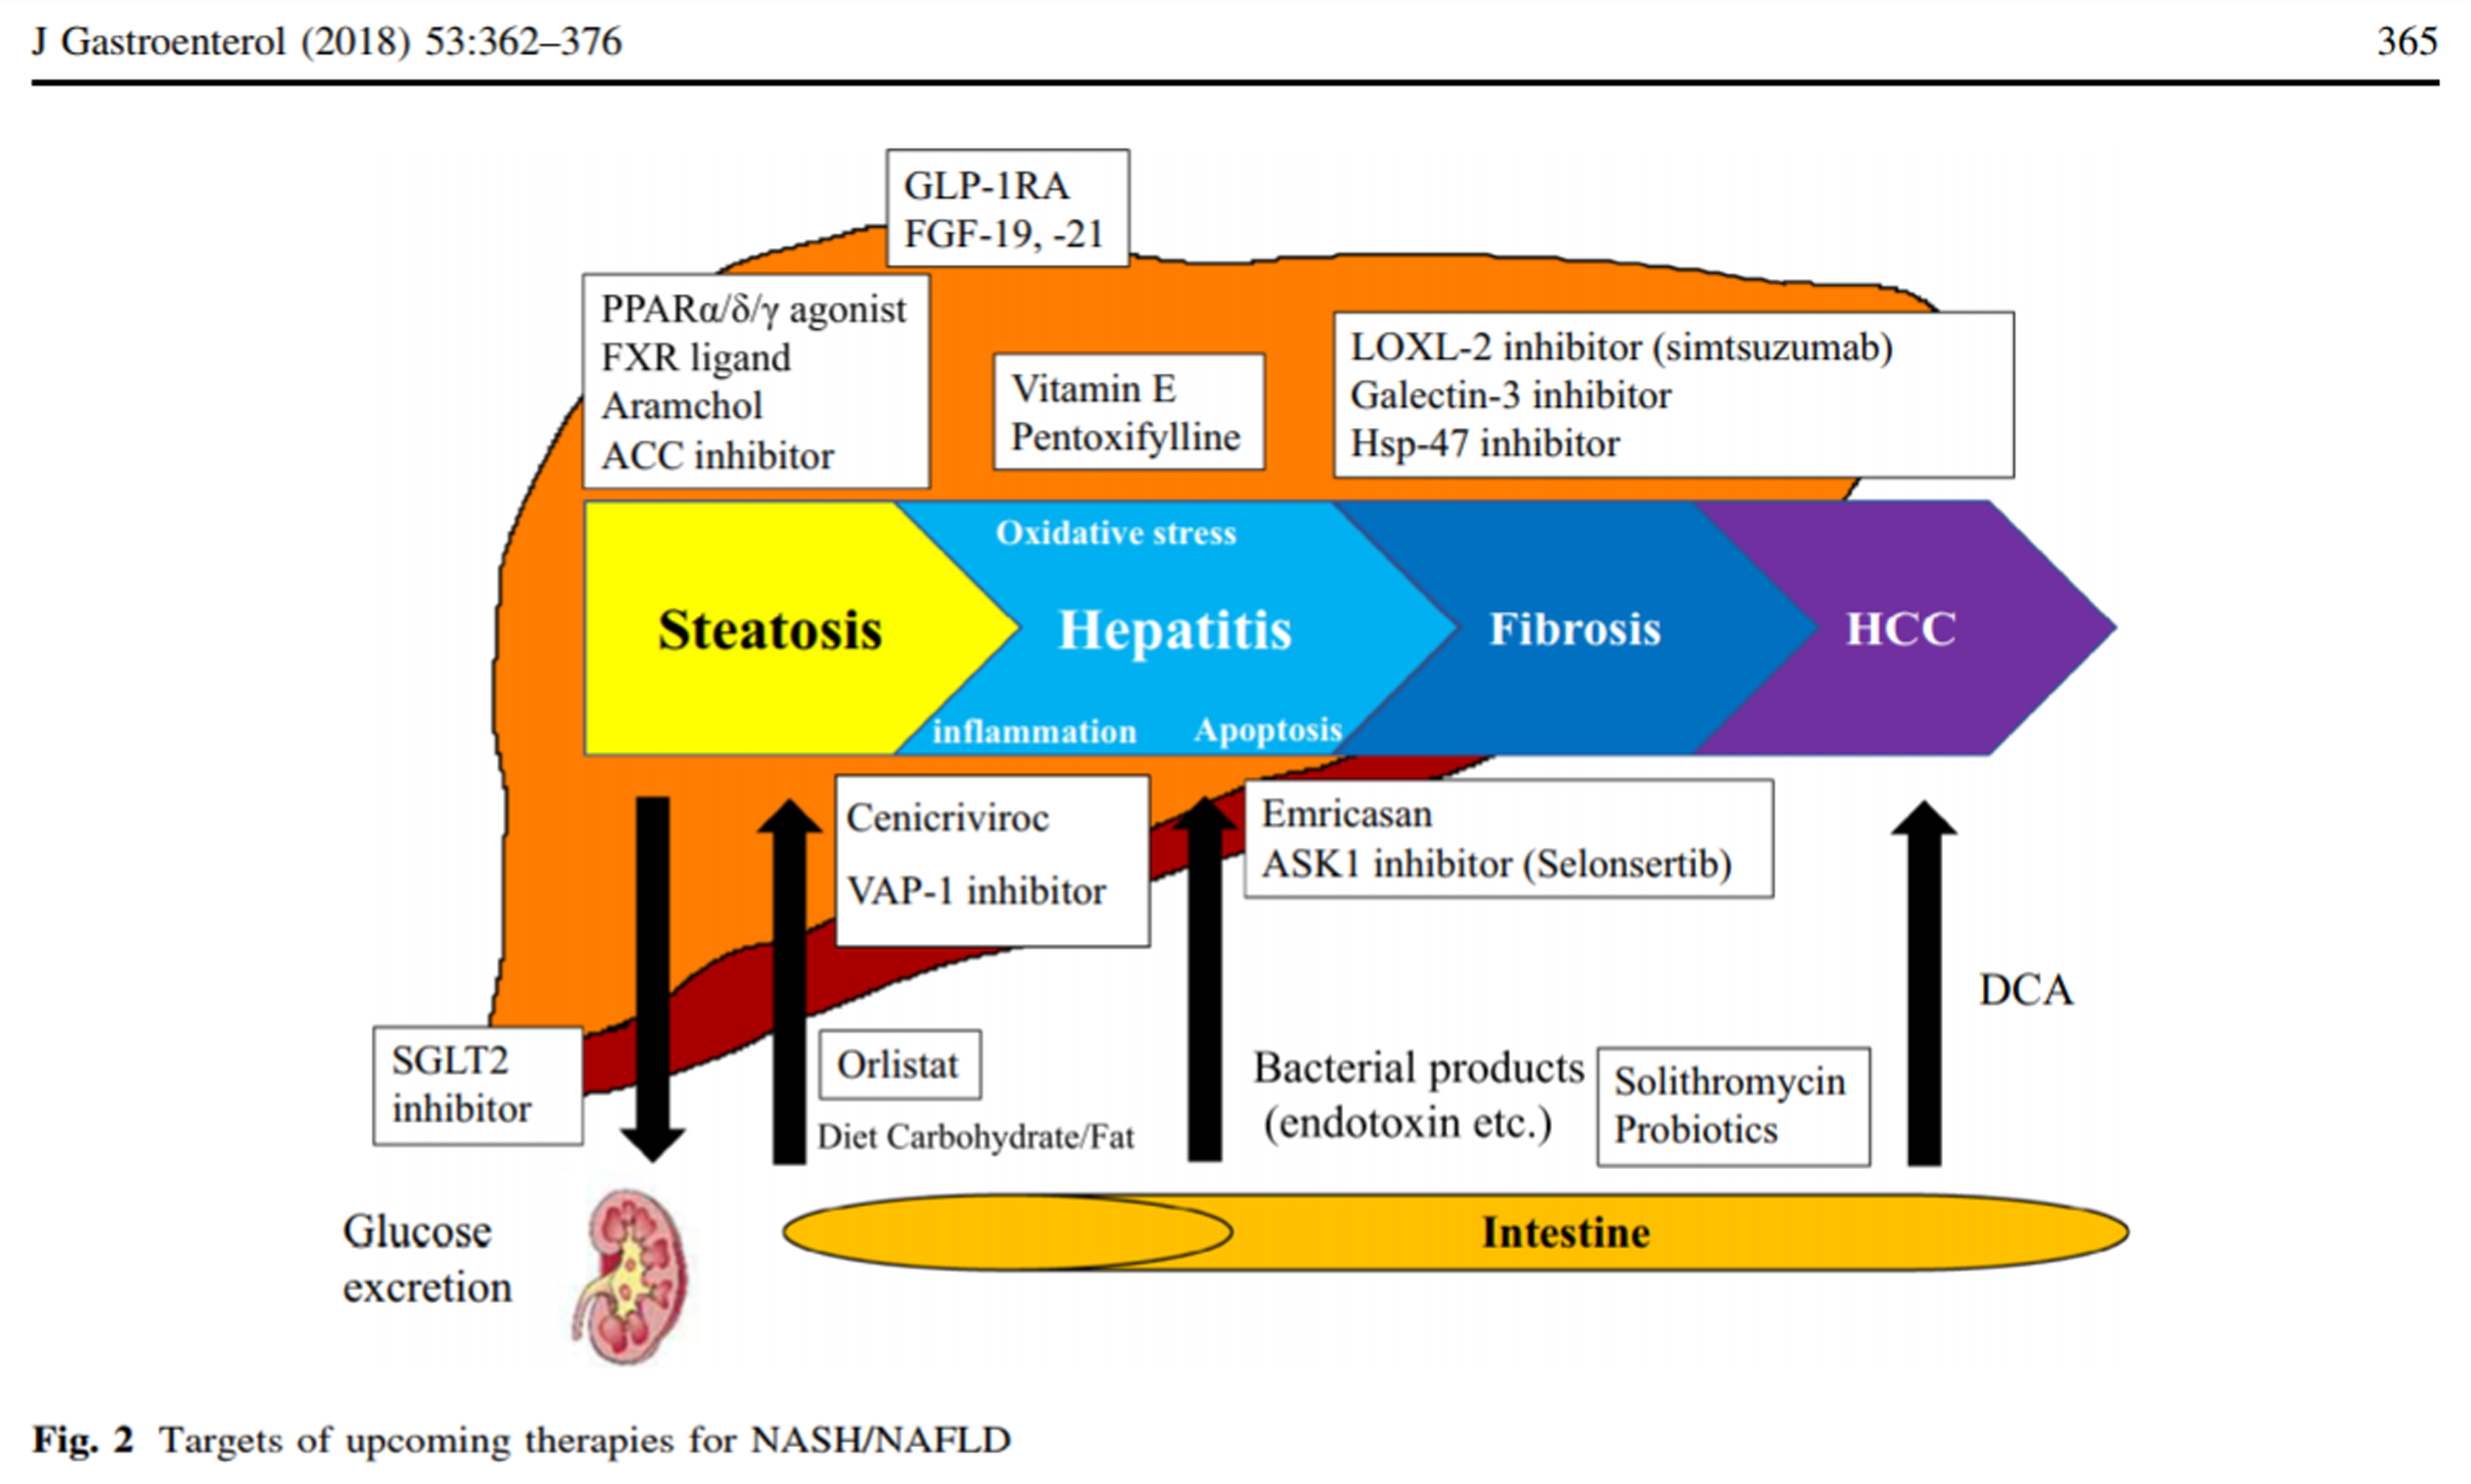 Cysteine-cysteine motif chemokine receptor-2/5 antagonist; Current and future pharmacological therapies for NAFLD NASH